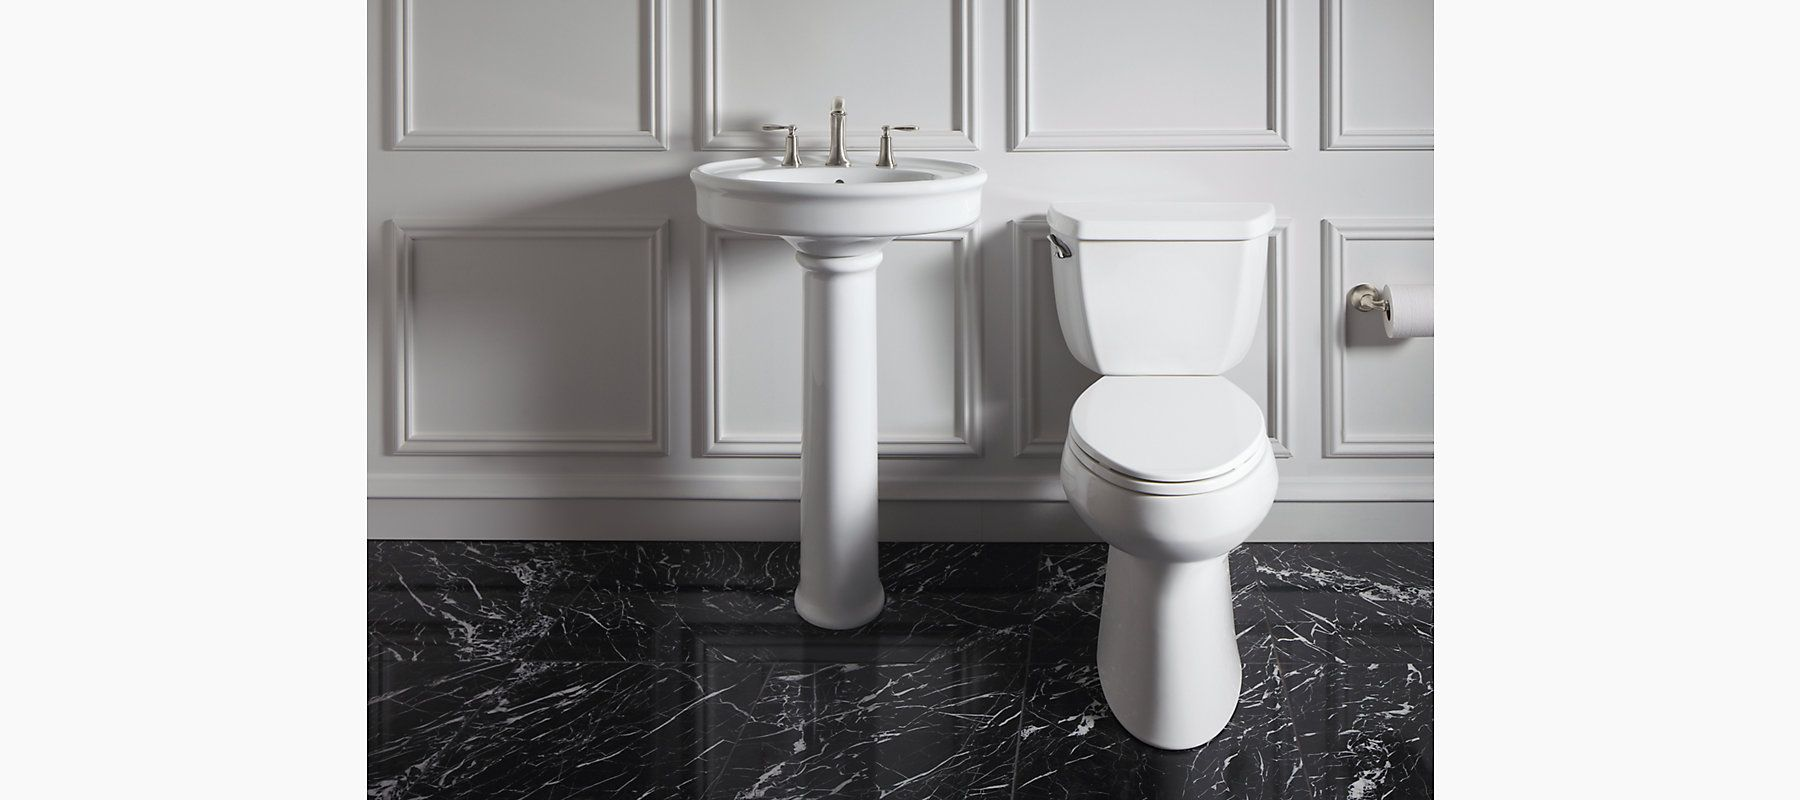 The K-R6385-8 pedestal sink features a spacious deck, Comfort Height, and subtle design elements to fit a wide range of bathroom decors.